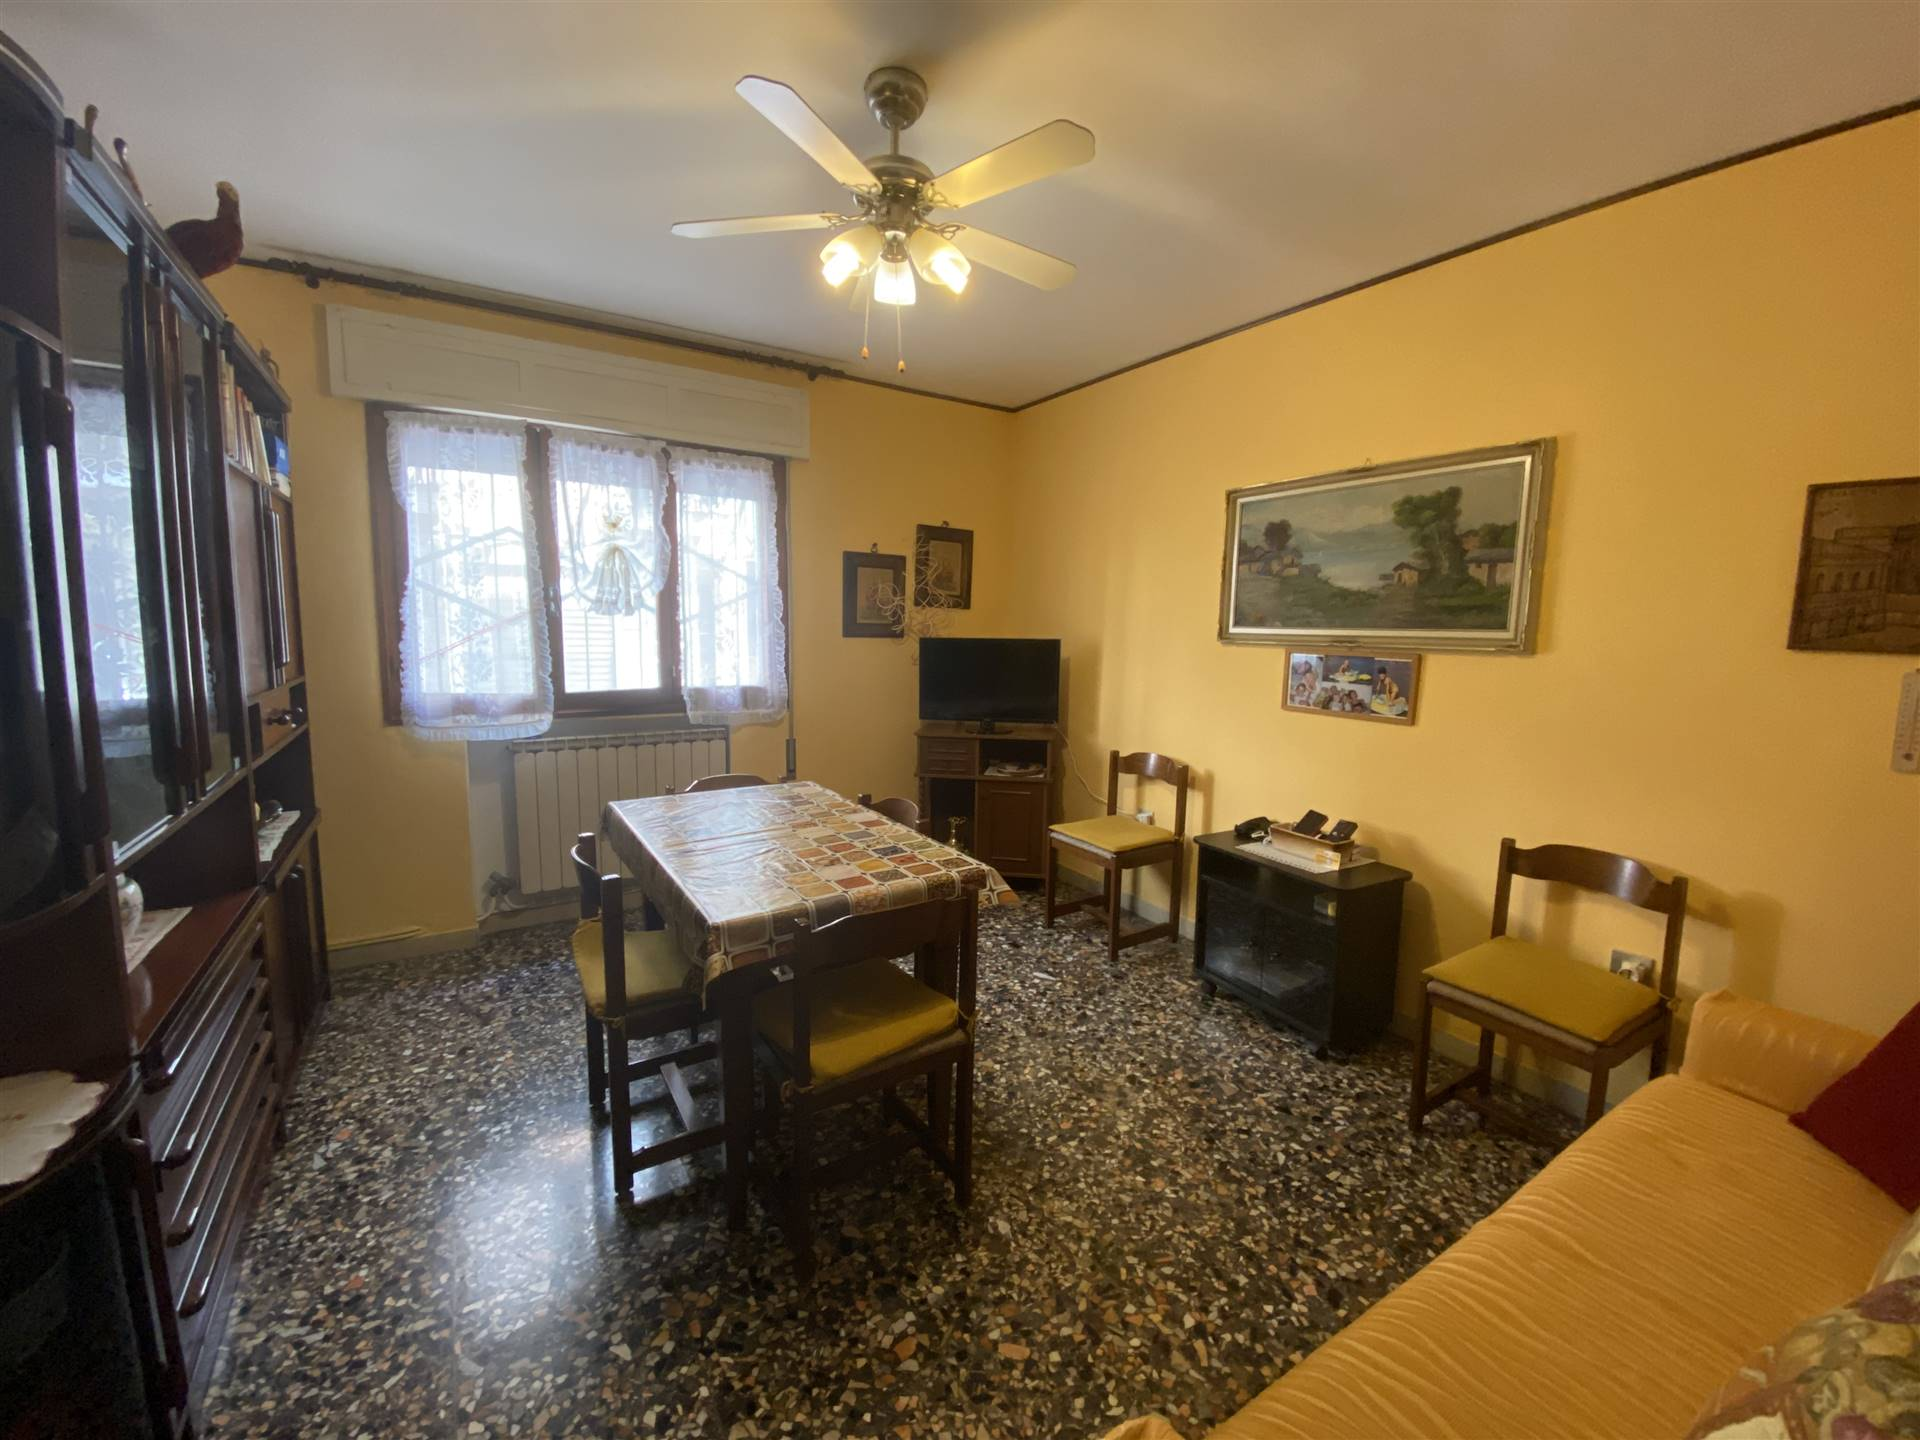 SOTTOMARINA, CHIOGGIA, Apartment for sale of 50 Sq. mt., Habitable, Heating Individual heating system, Energetic class: G, placed at Ground, composed